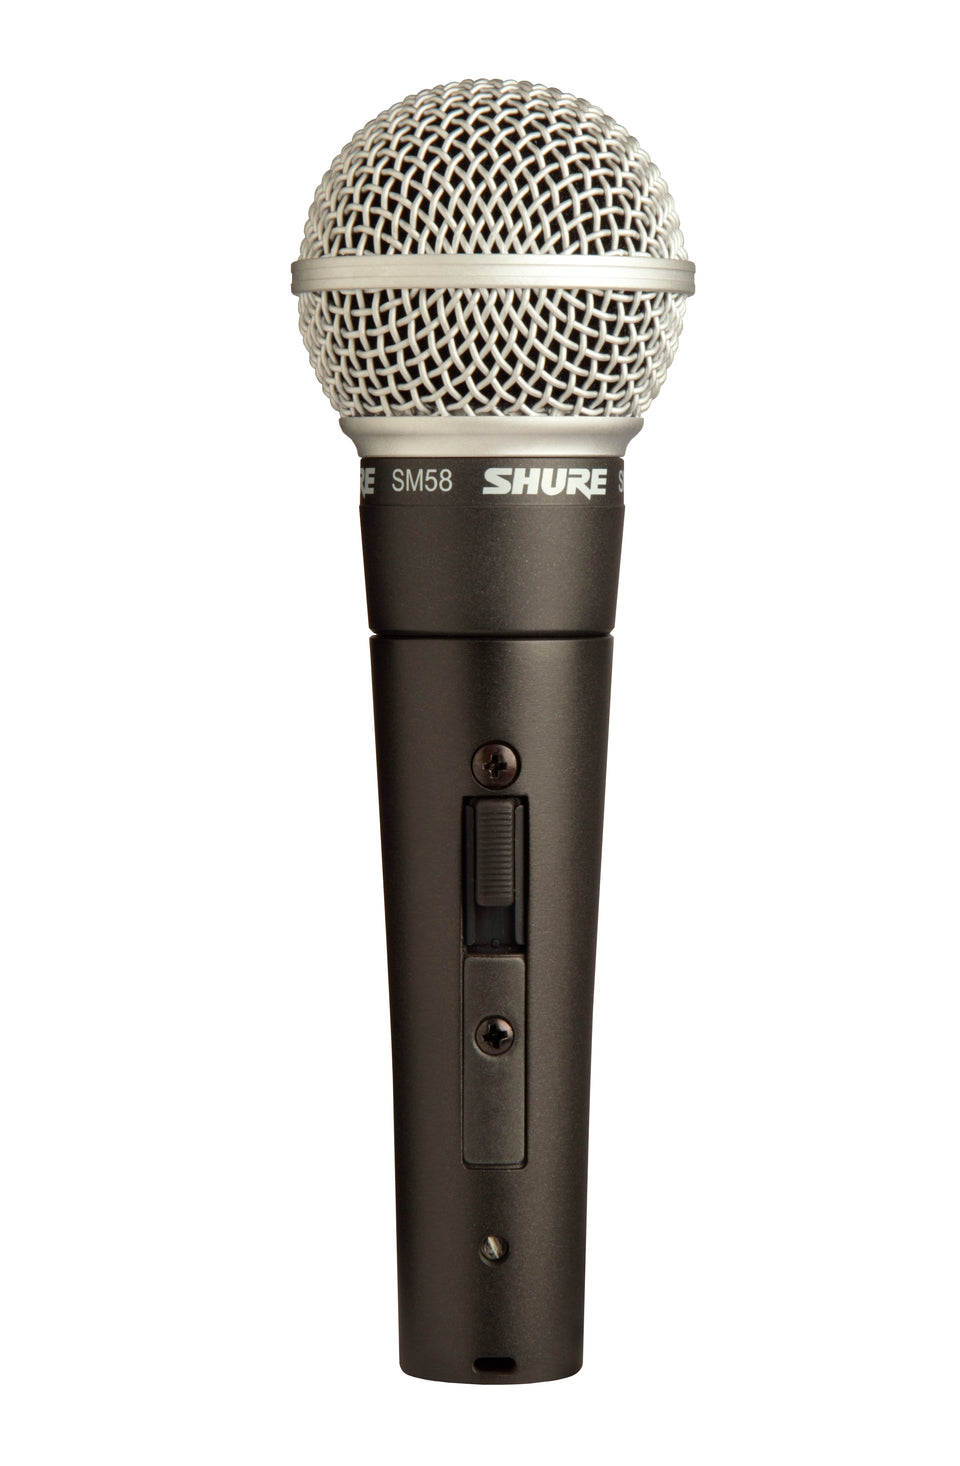 Shure SM58S Legendary Live Vocal Dynamic Microphone With On/Off Switch